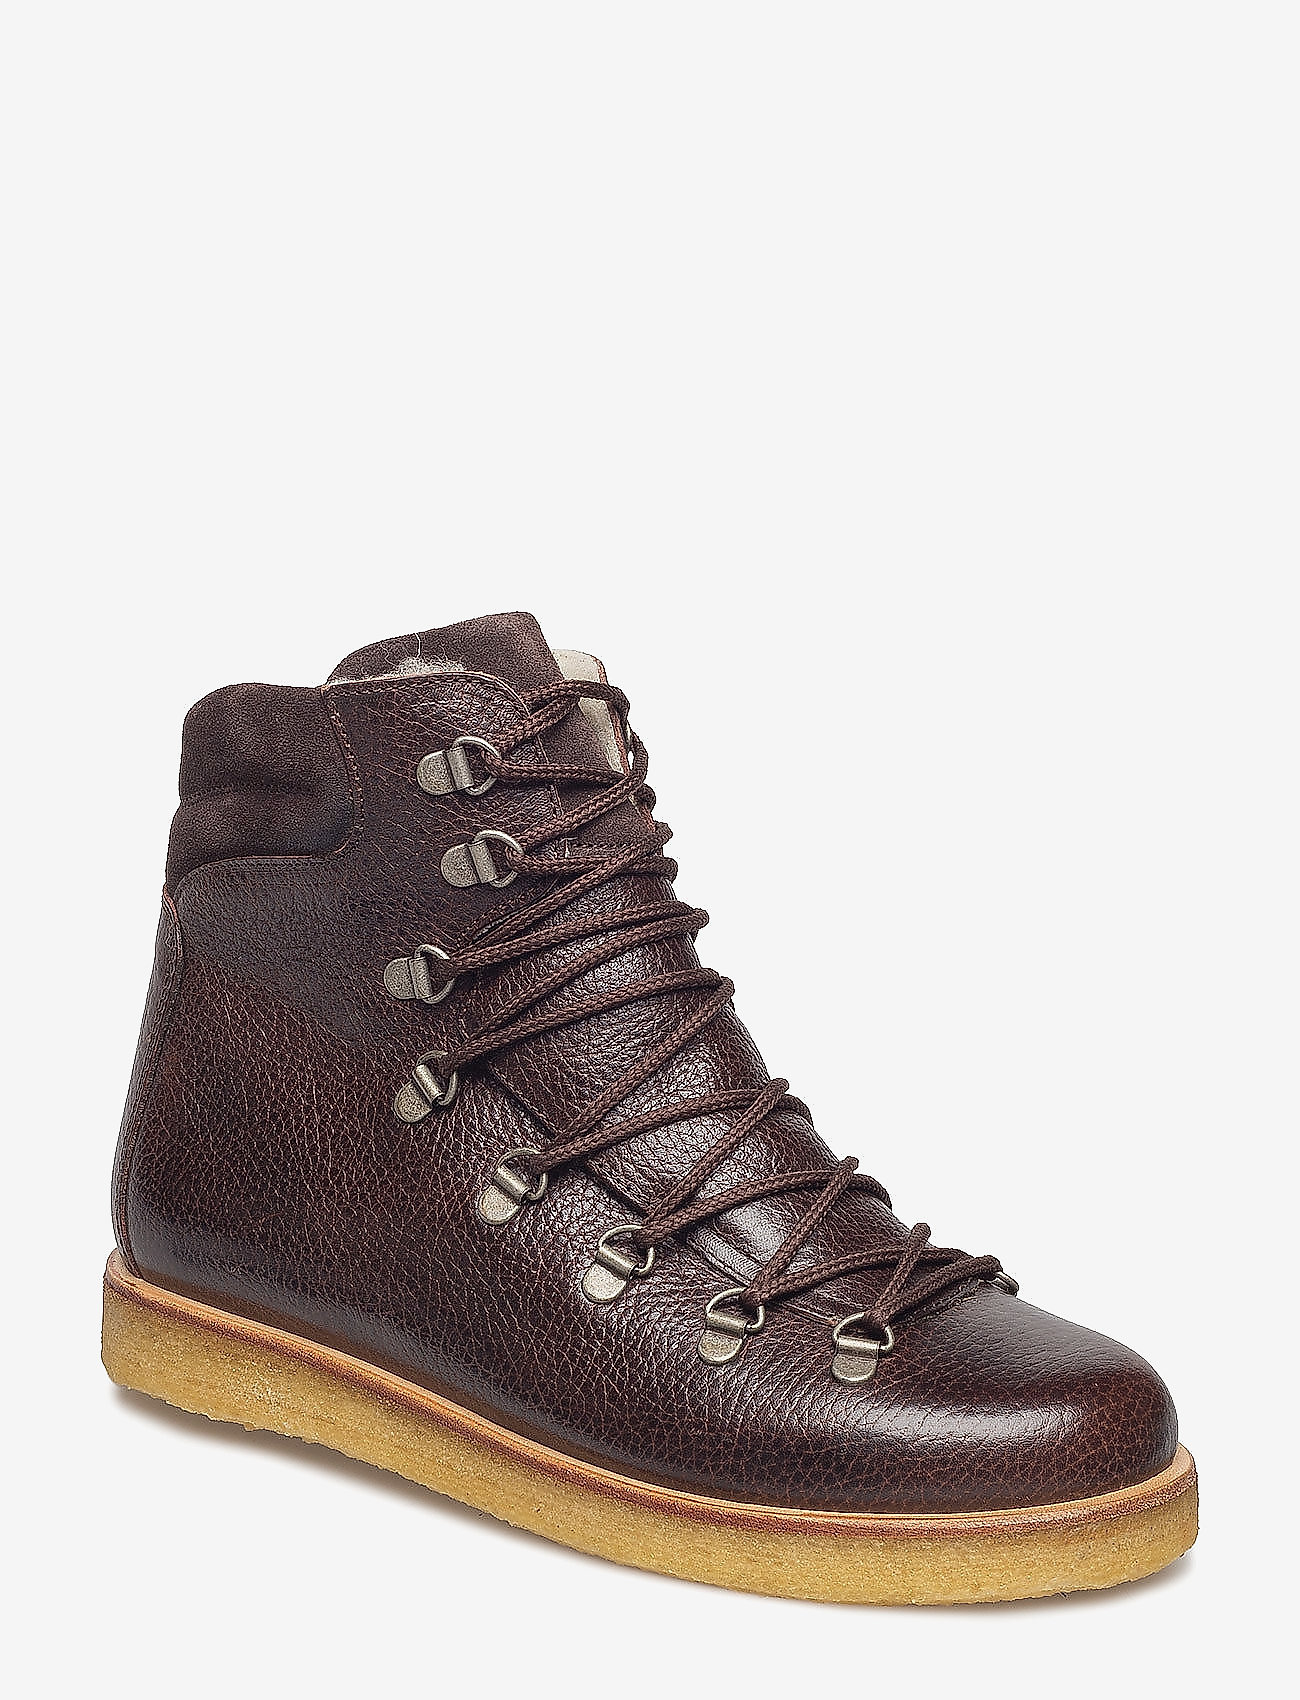 ANGULUS - Boots - flat - with laces - talon bas - 2505/2193 d.brown/d.brown - 0